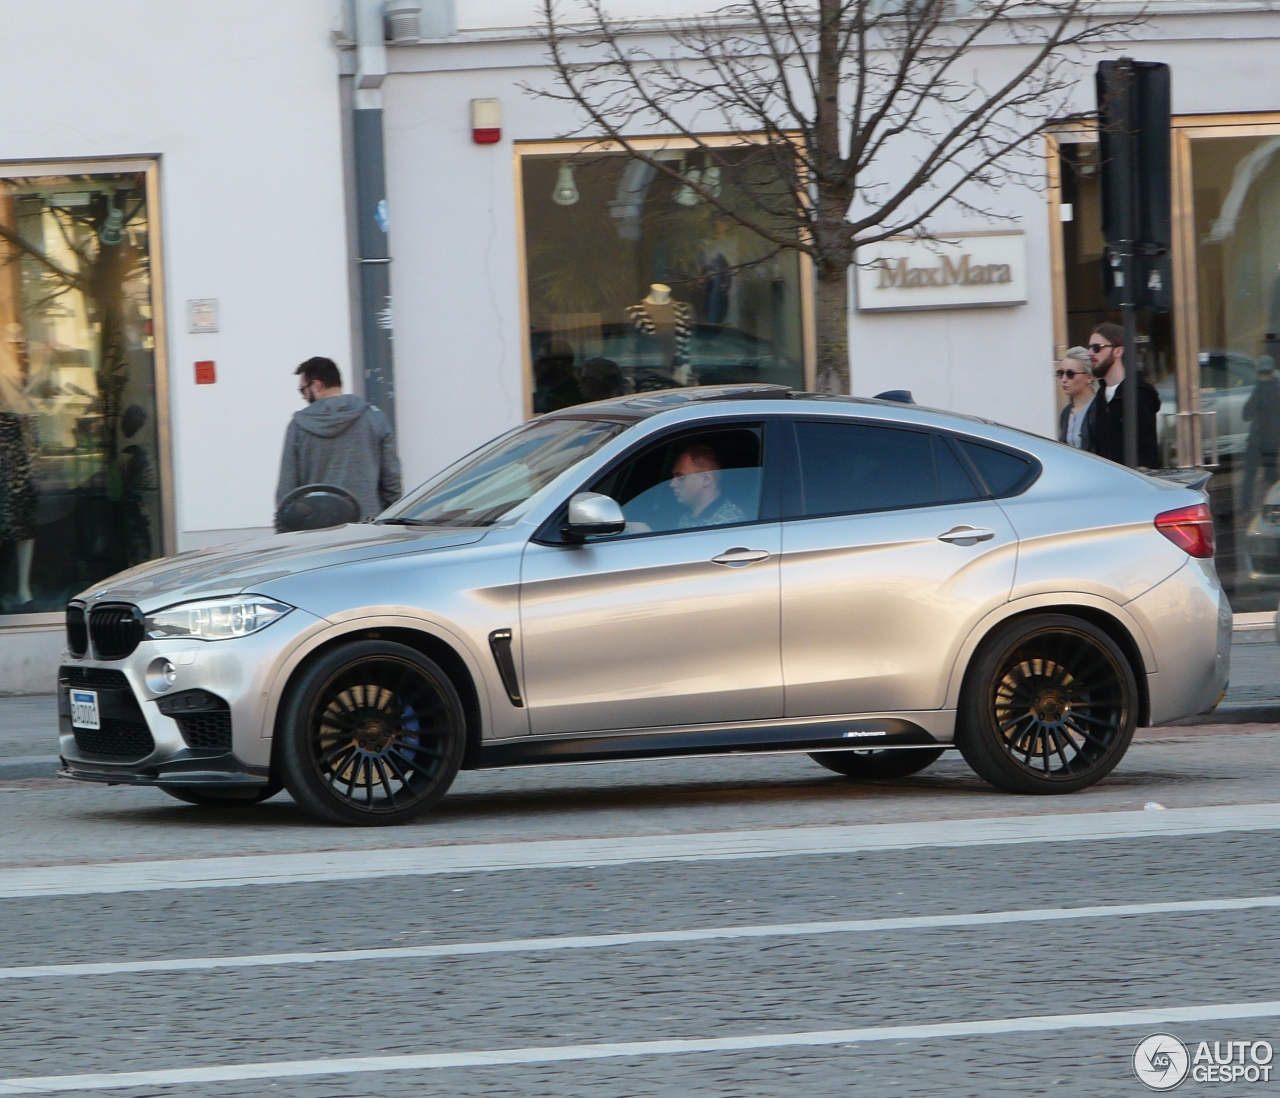 Bmw X6 Price In Germany: BMW Hamann X6 M F86